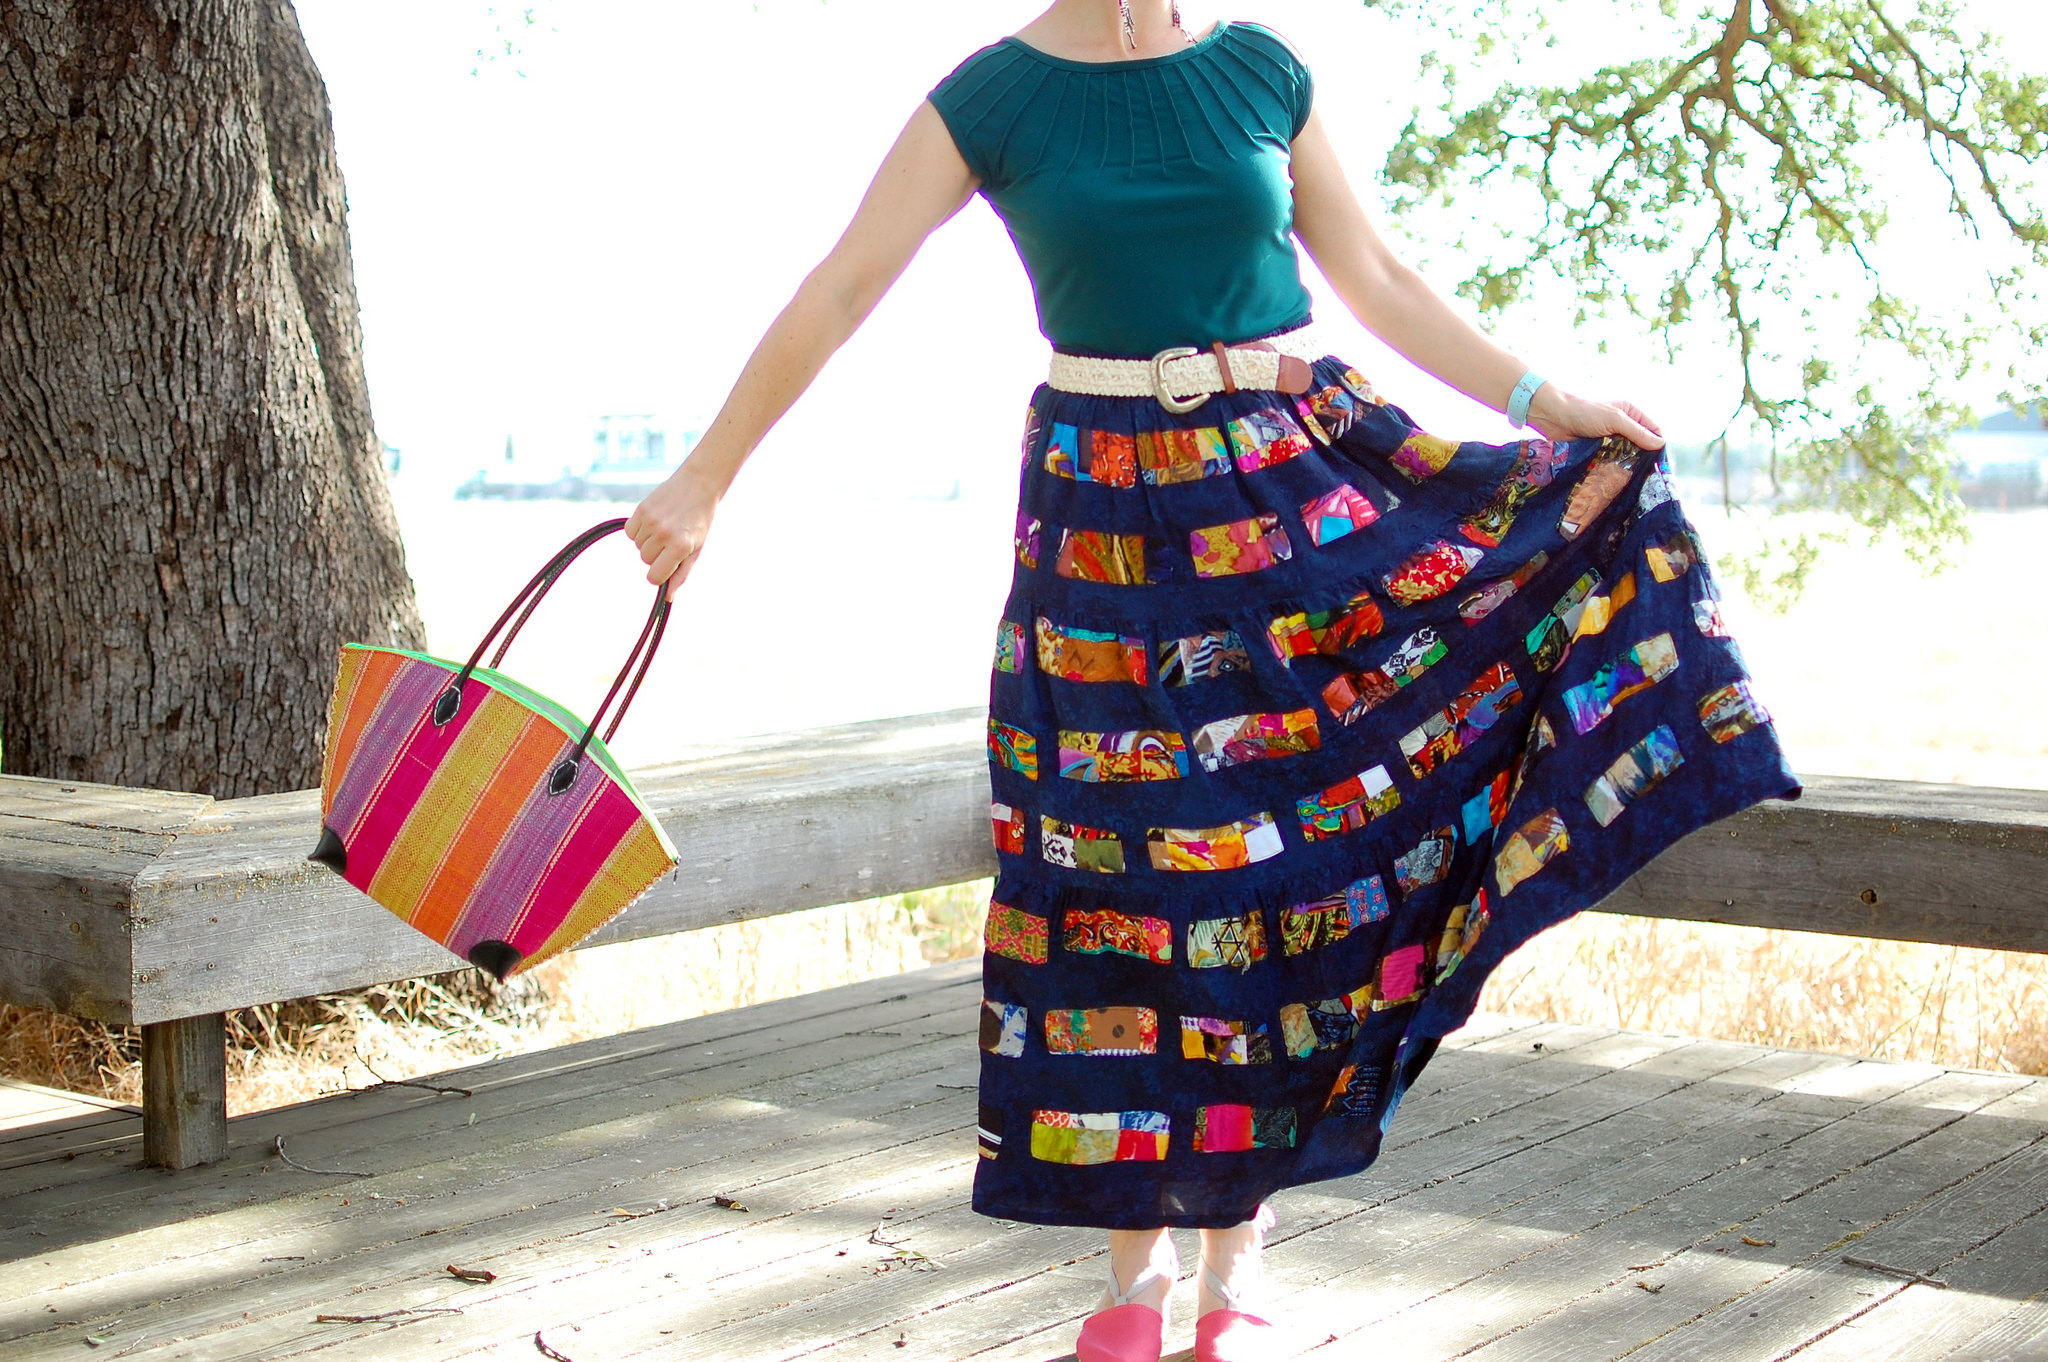 patchwork maxi skirt outfit ootd whatiwore2dah